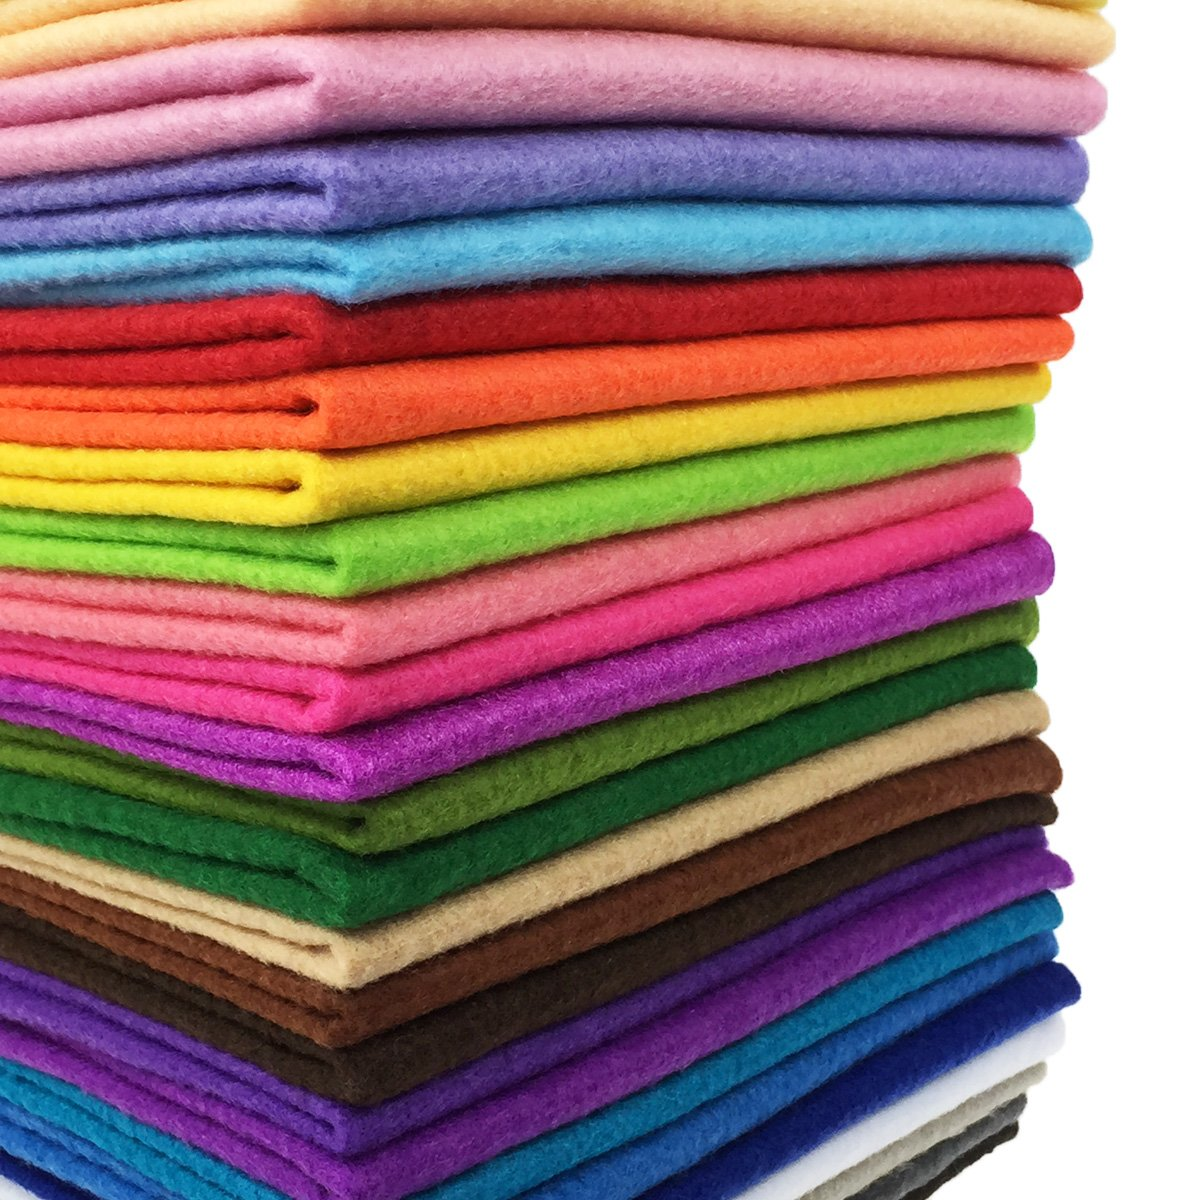 28pcs Thick 1.4mm Soft Felt Fabric Sheet Assorted Color Felt Pack DIY Craft Sewing Squares Nonwoven Patchwork (60x60cm) flic-flac WJCR-FB-BZ6060-28P